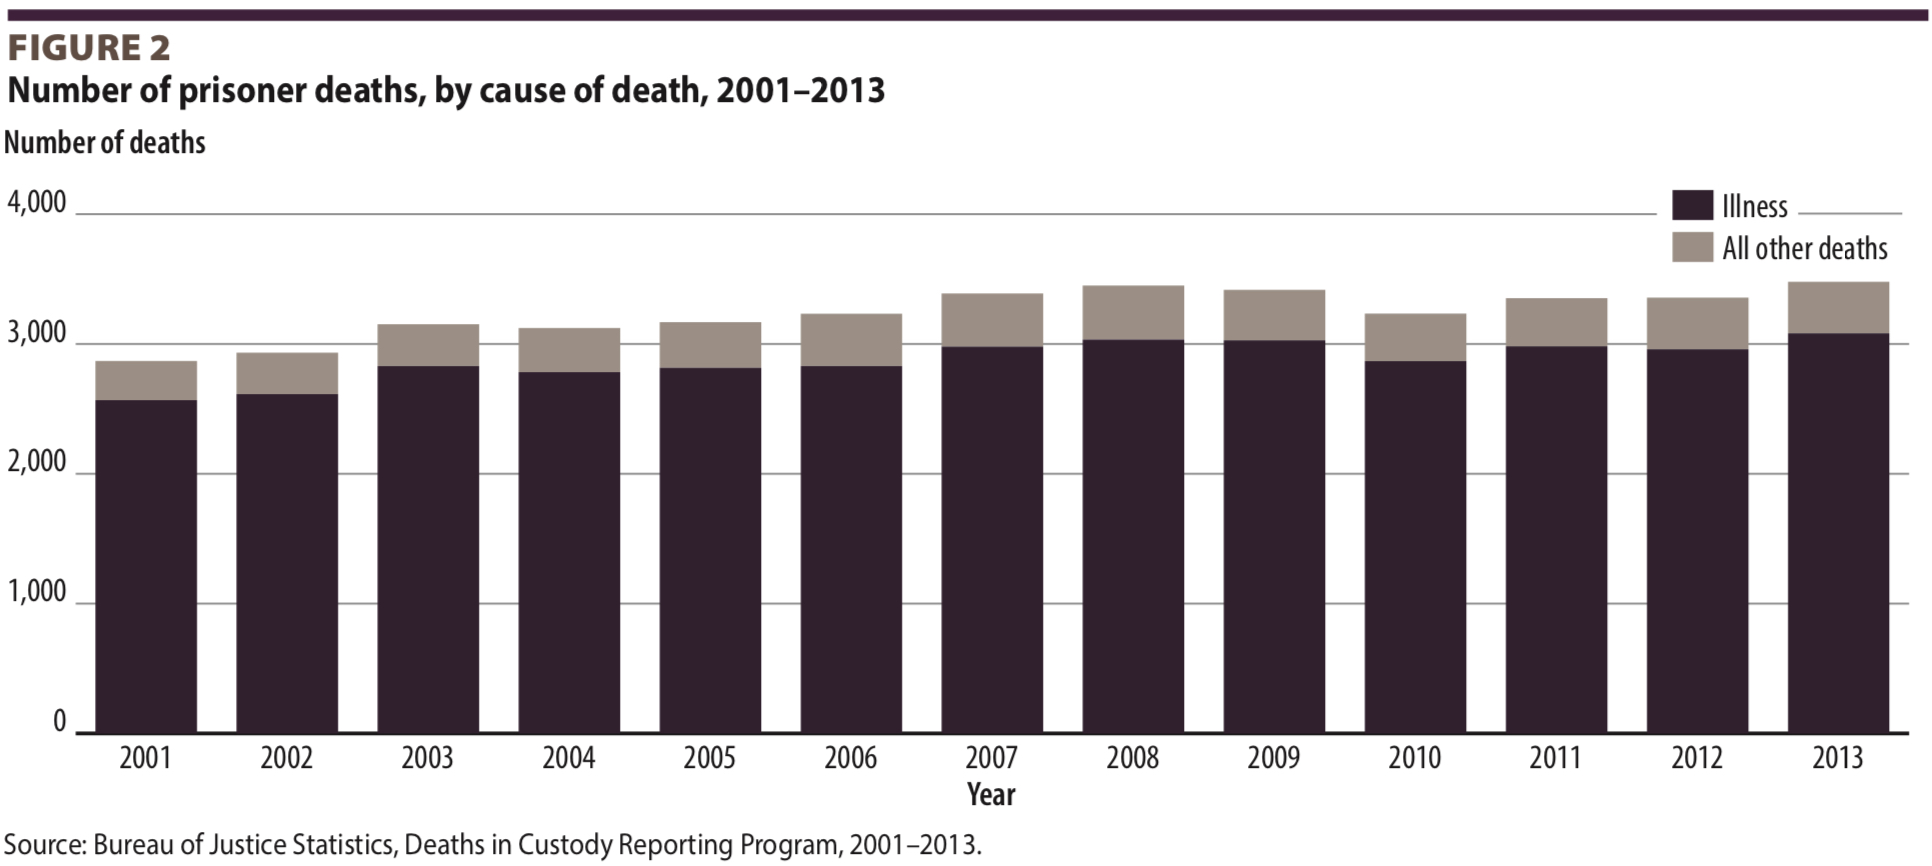 Number of prisoner deaths, by cause of death, 2000-2013